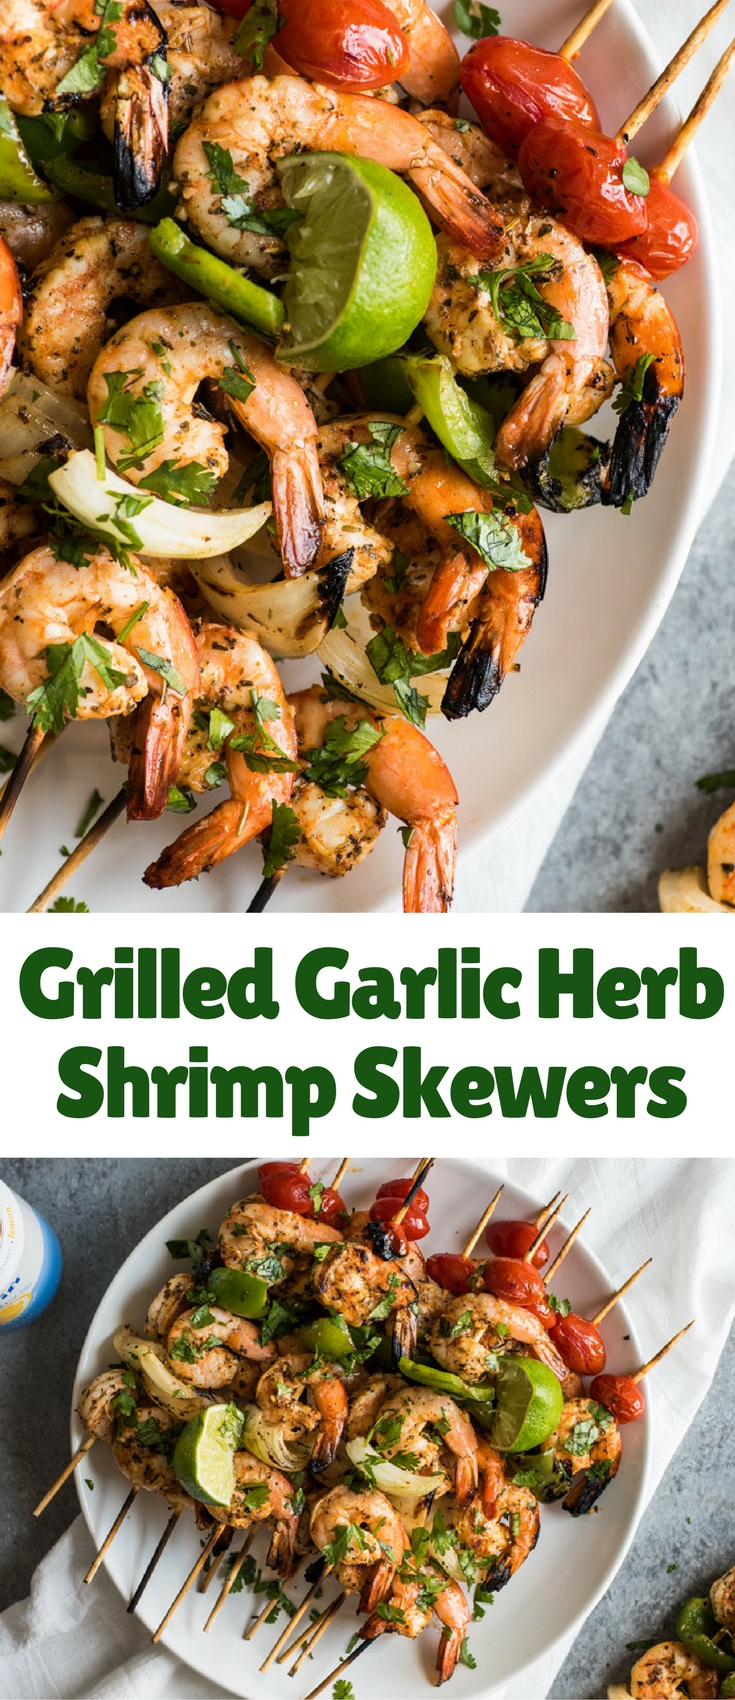 Grilled Garlic Herb Shrimp Skewers - Blogger Bests